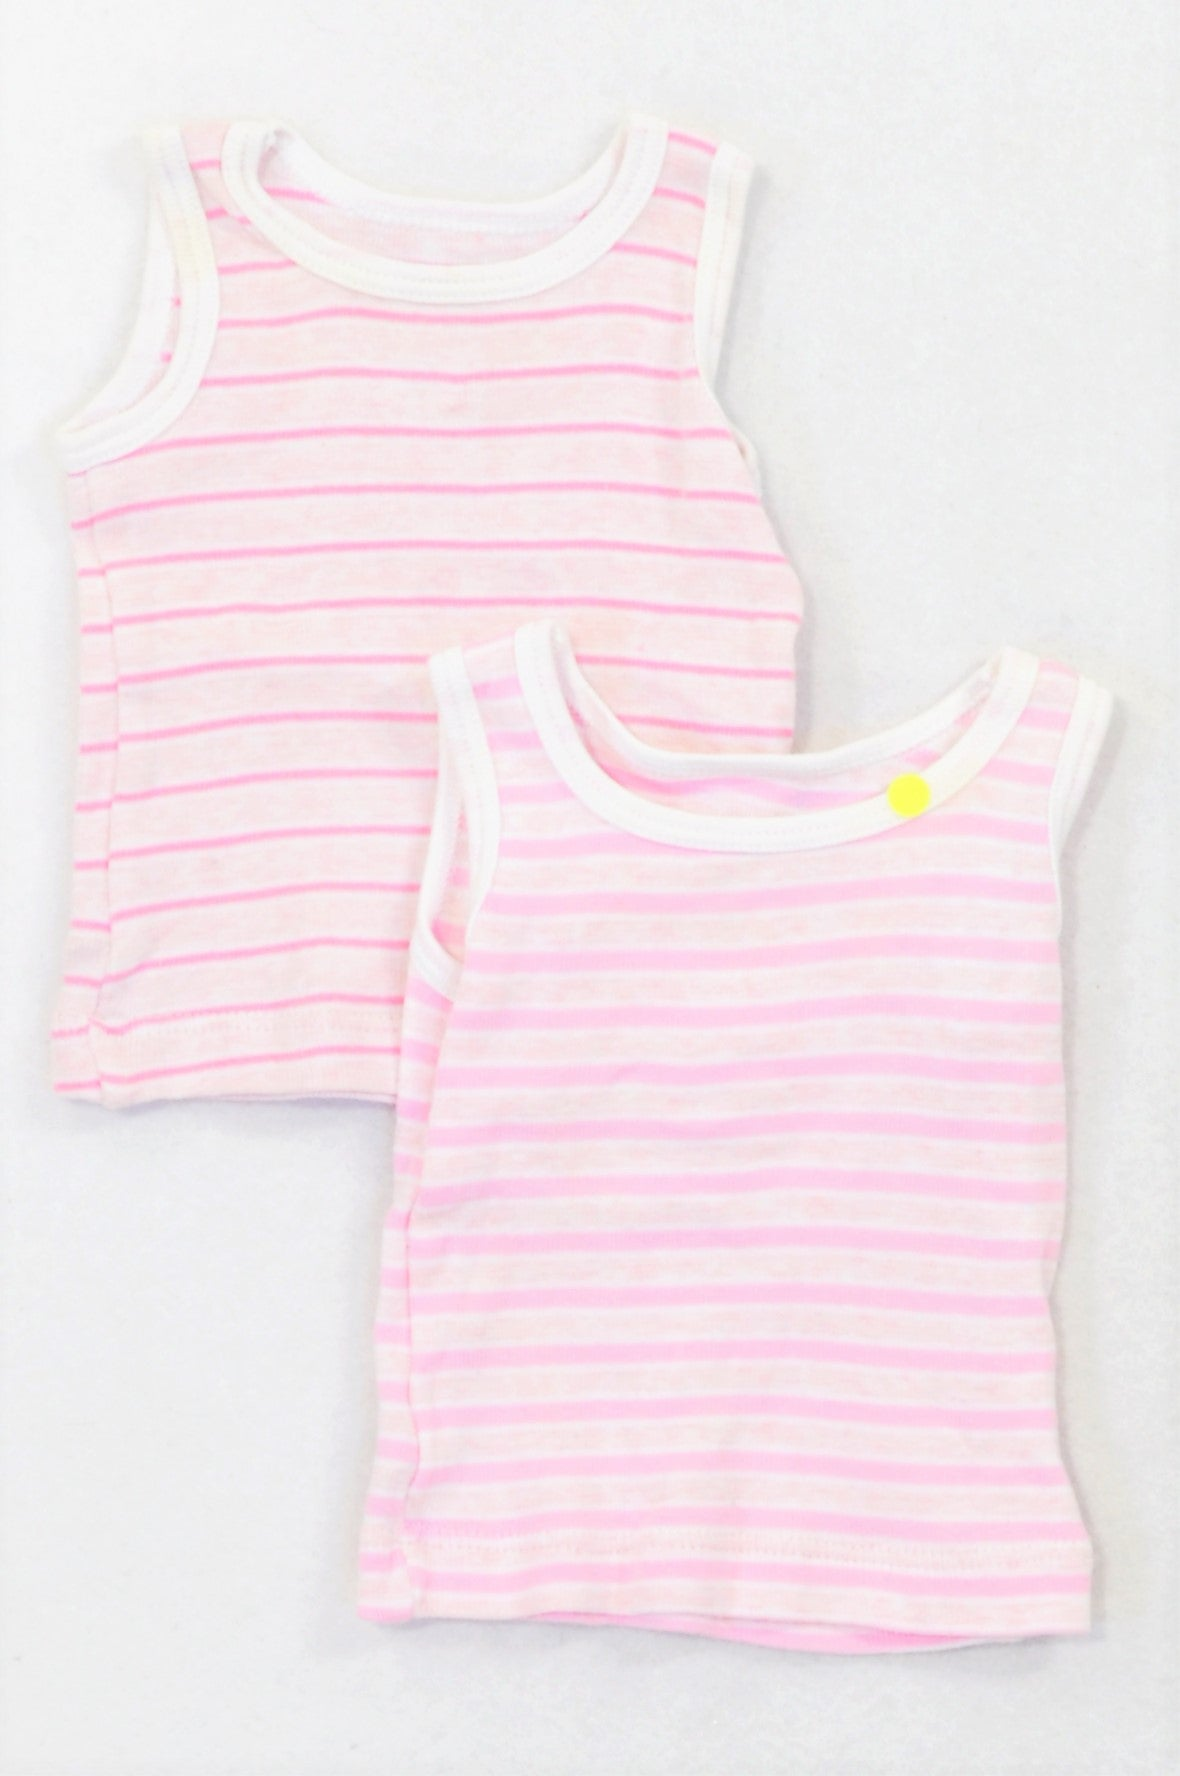 Woolworths 2 Pack Pinstripe Tank Tops Girls 0-3 months